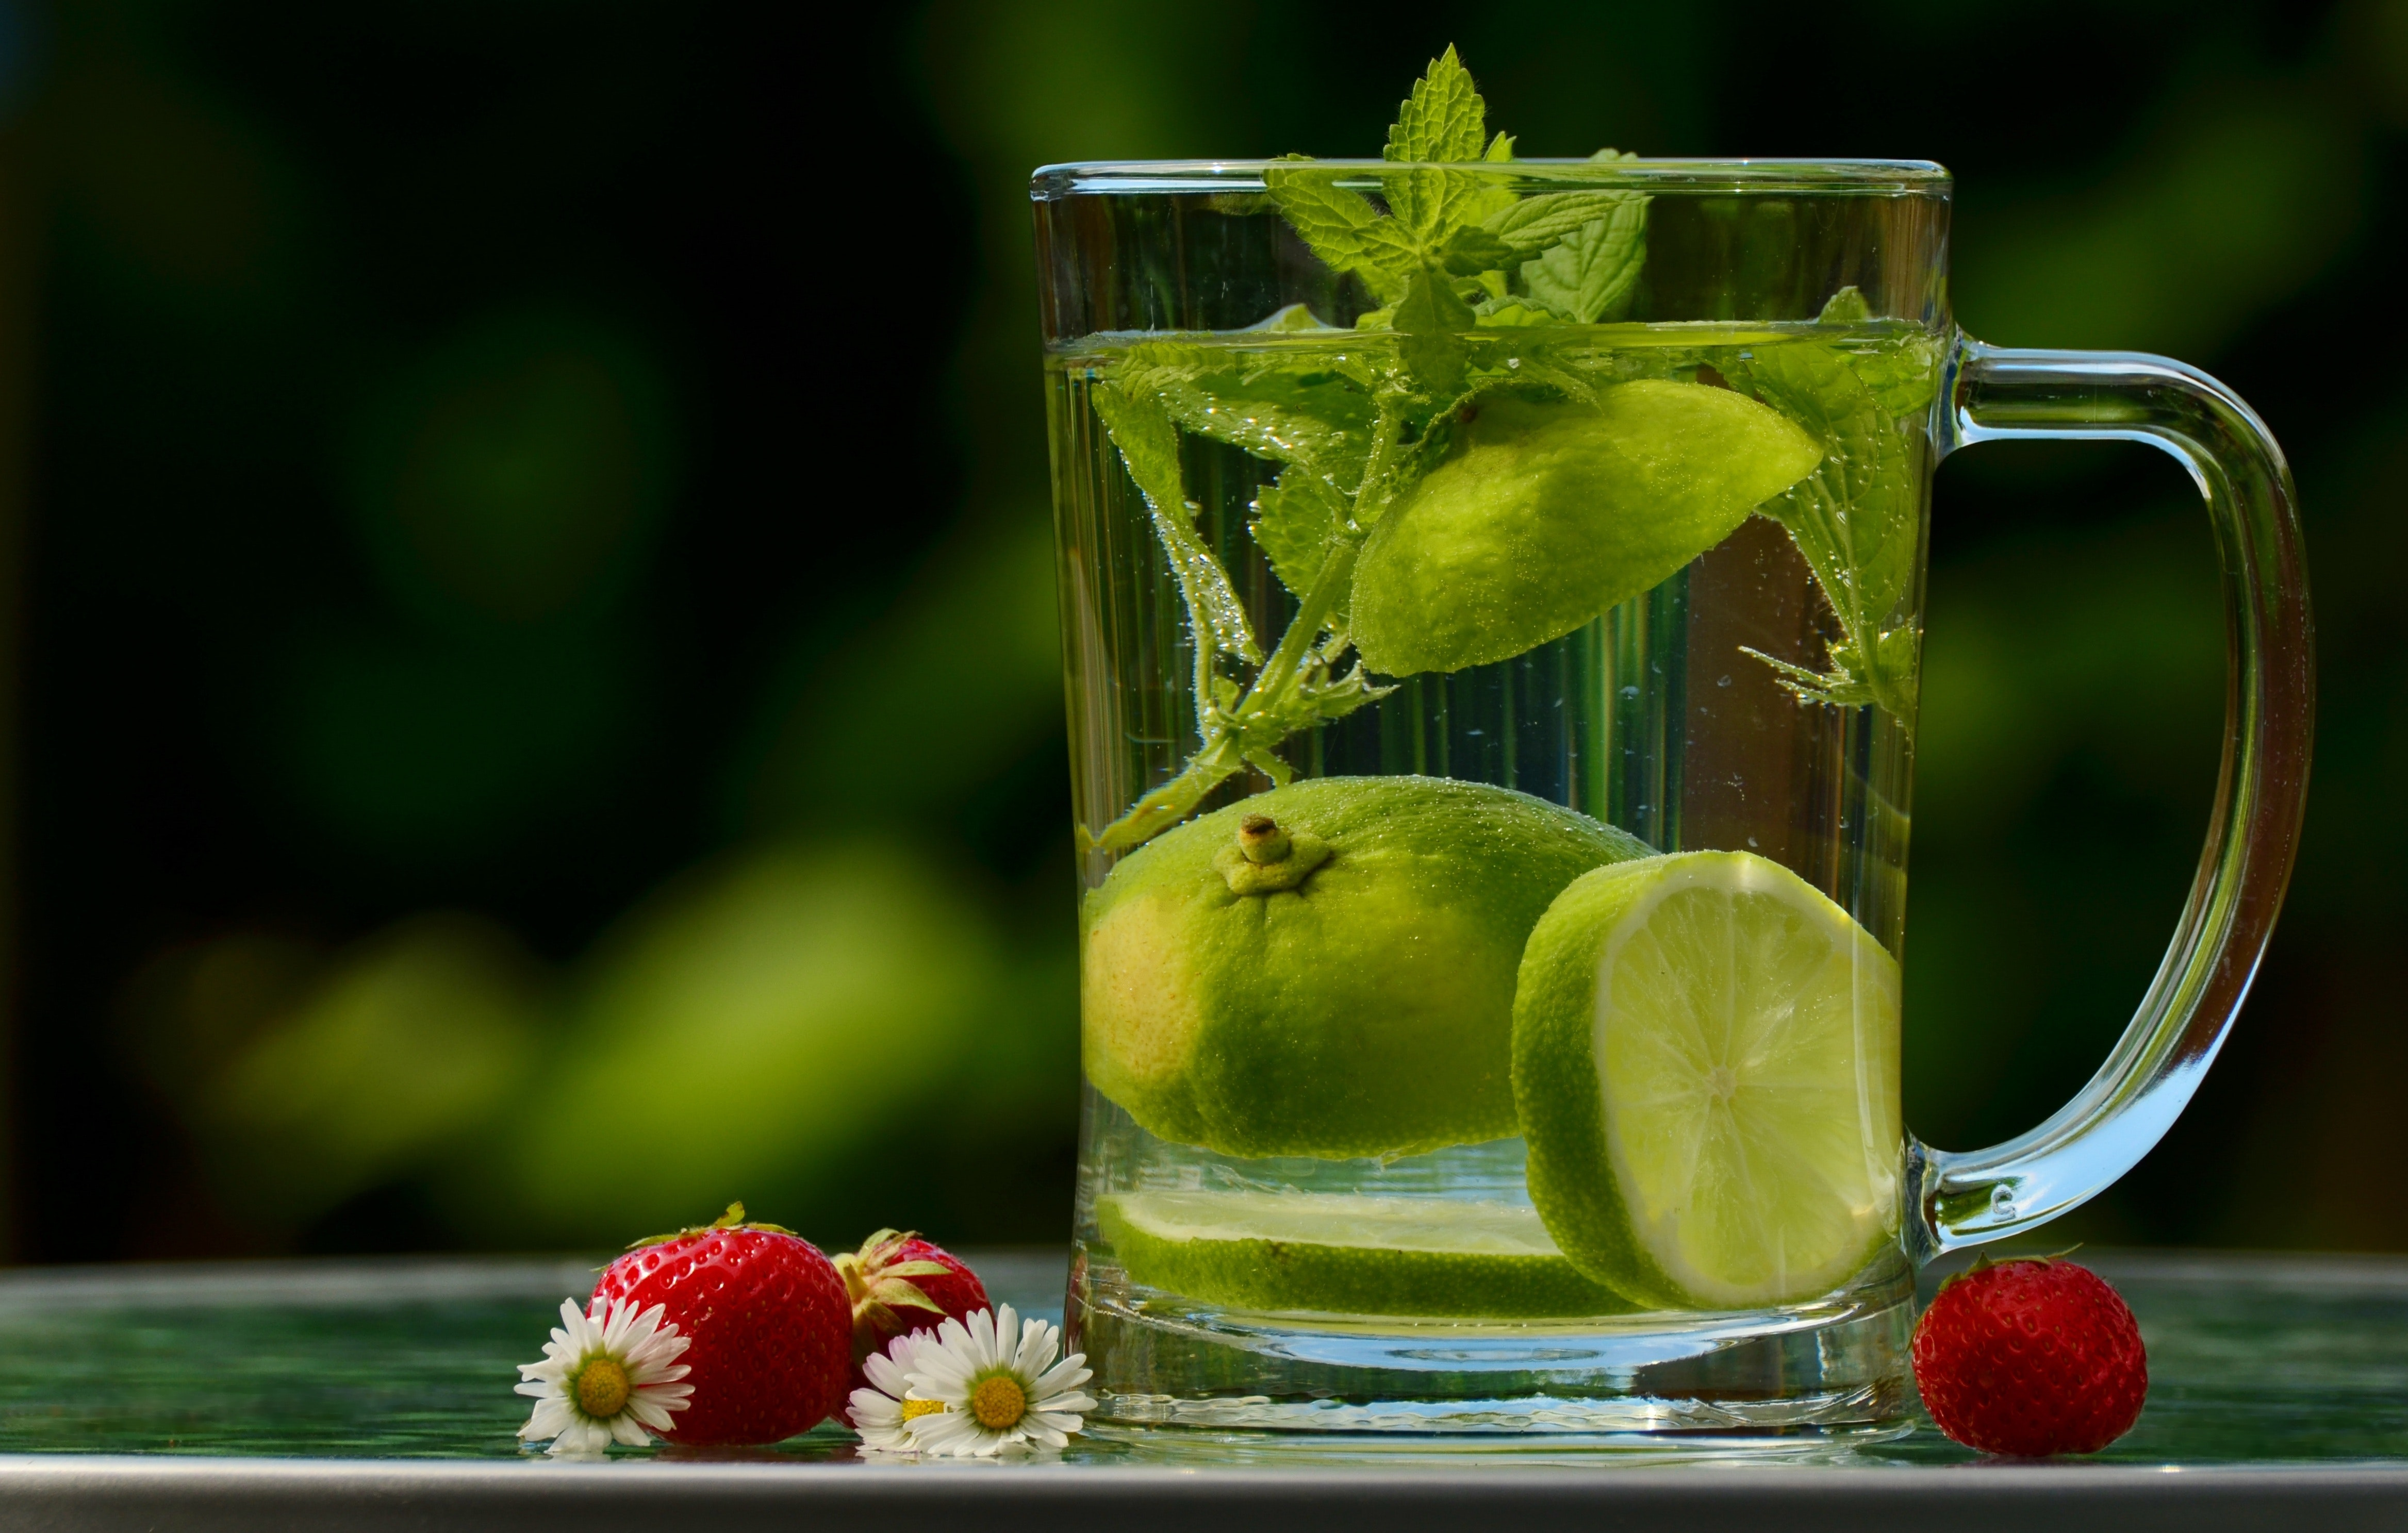 Green round fruit on clear glass mug with water photo